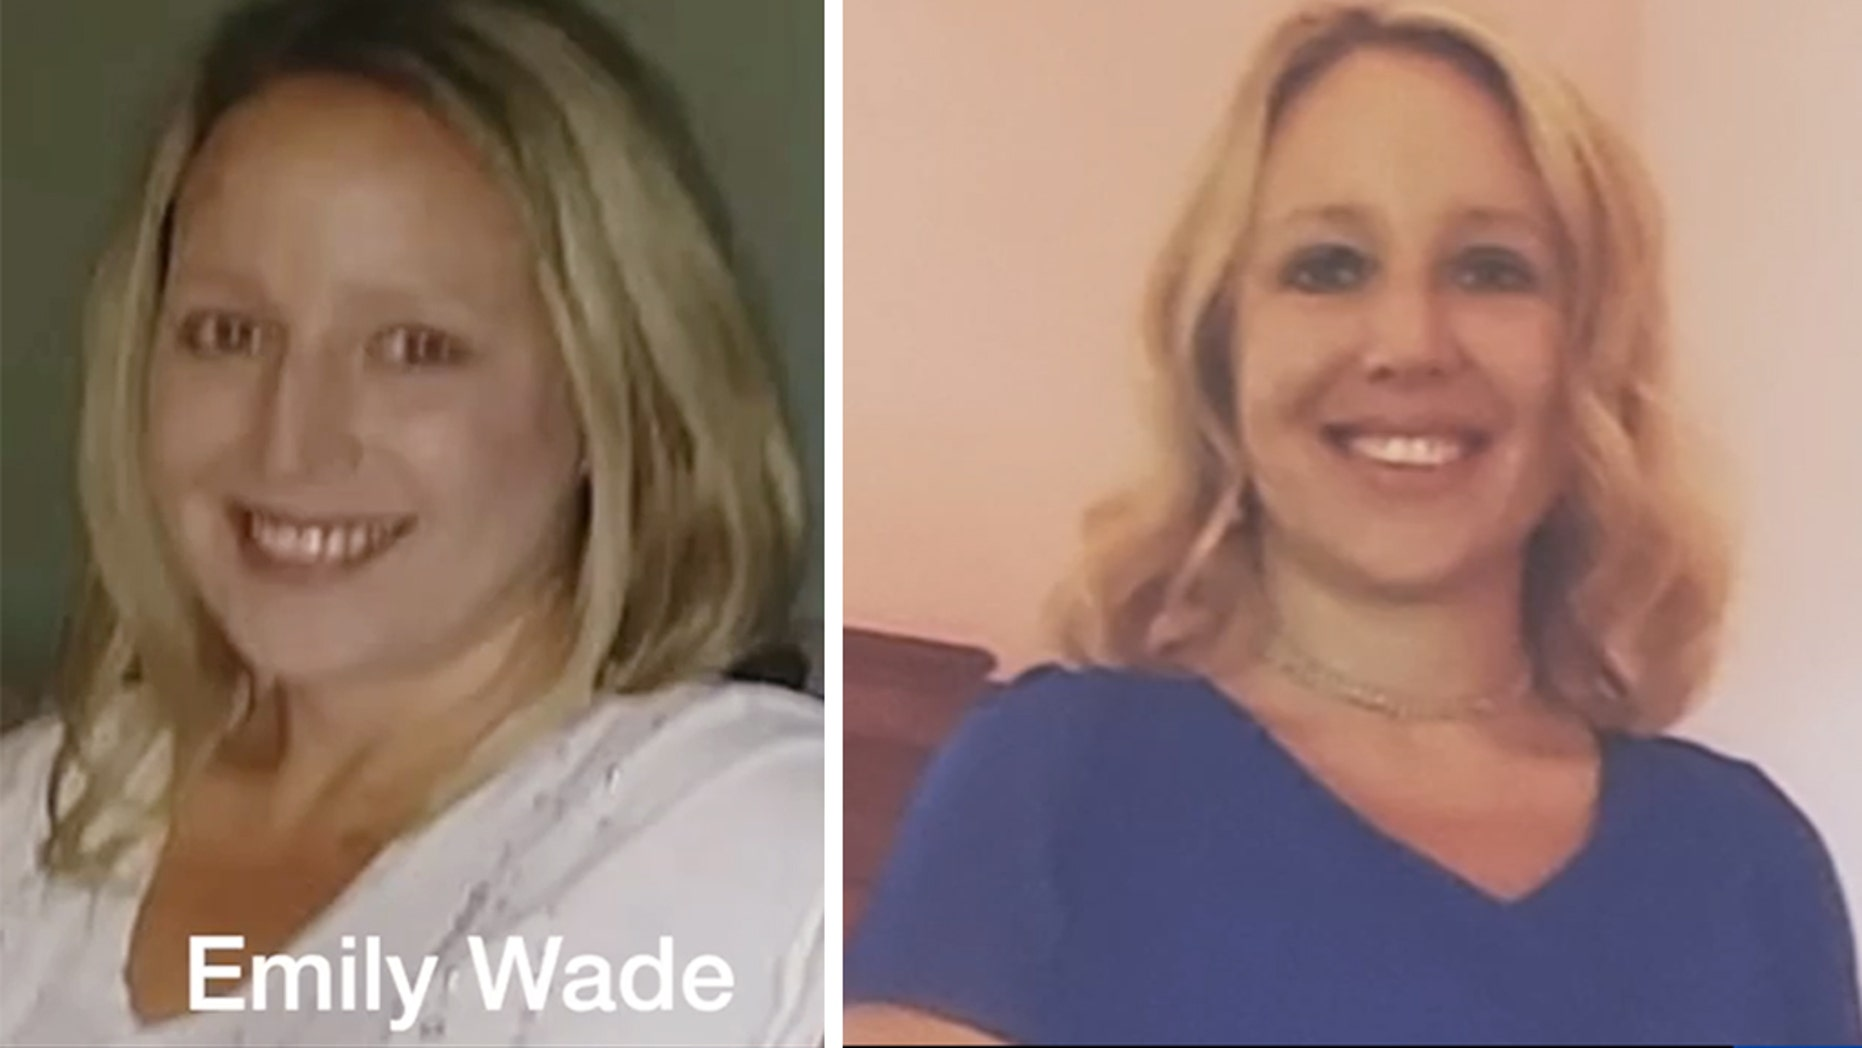 Emily Wade, 38, disappeared on Jan. 5 after watching a movie at her co-worker's home in Ennis, Texas, police said.